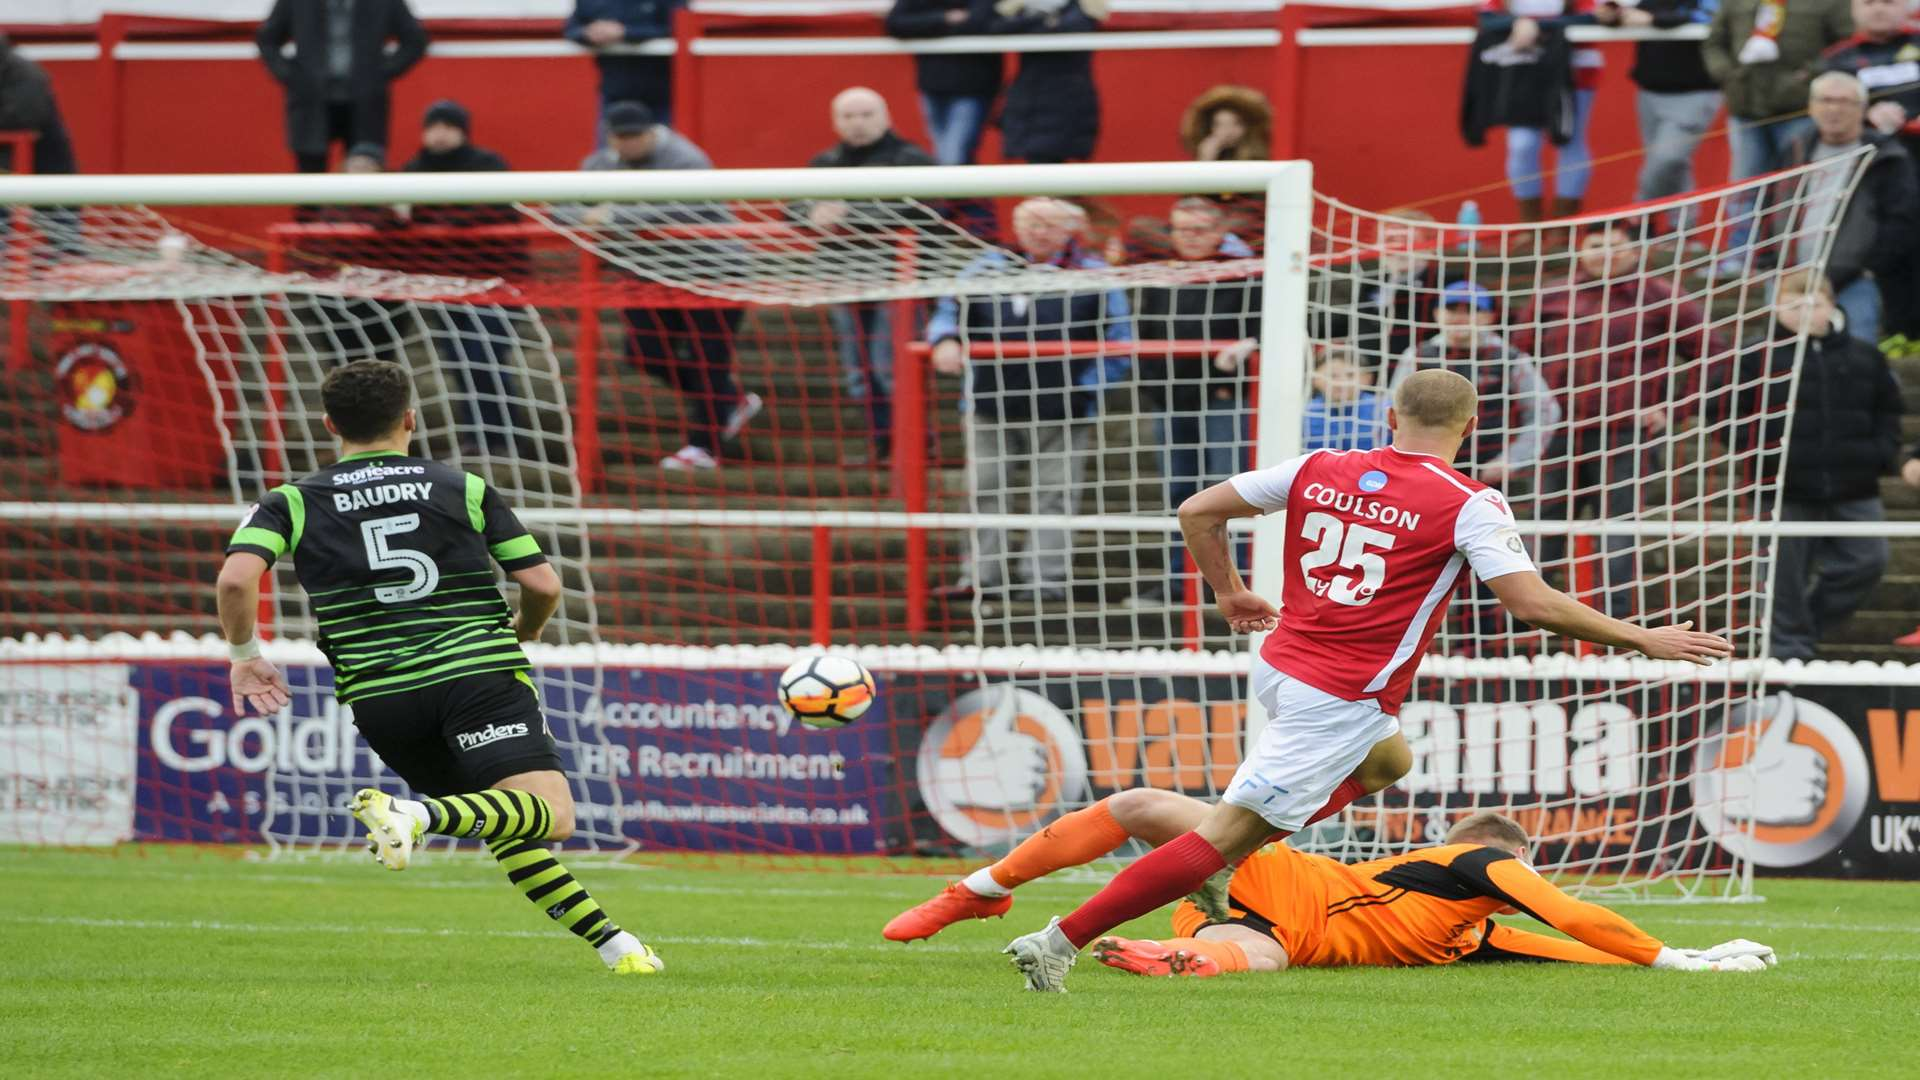 Luke Coulson makes it 2-0 to Ebbsfleet in the 37th minute Picture: Andy Payton